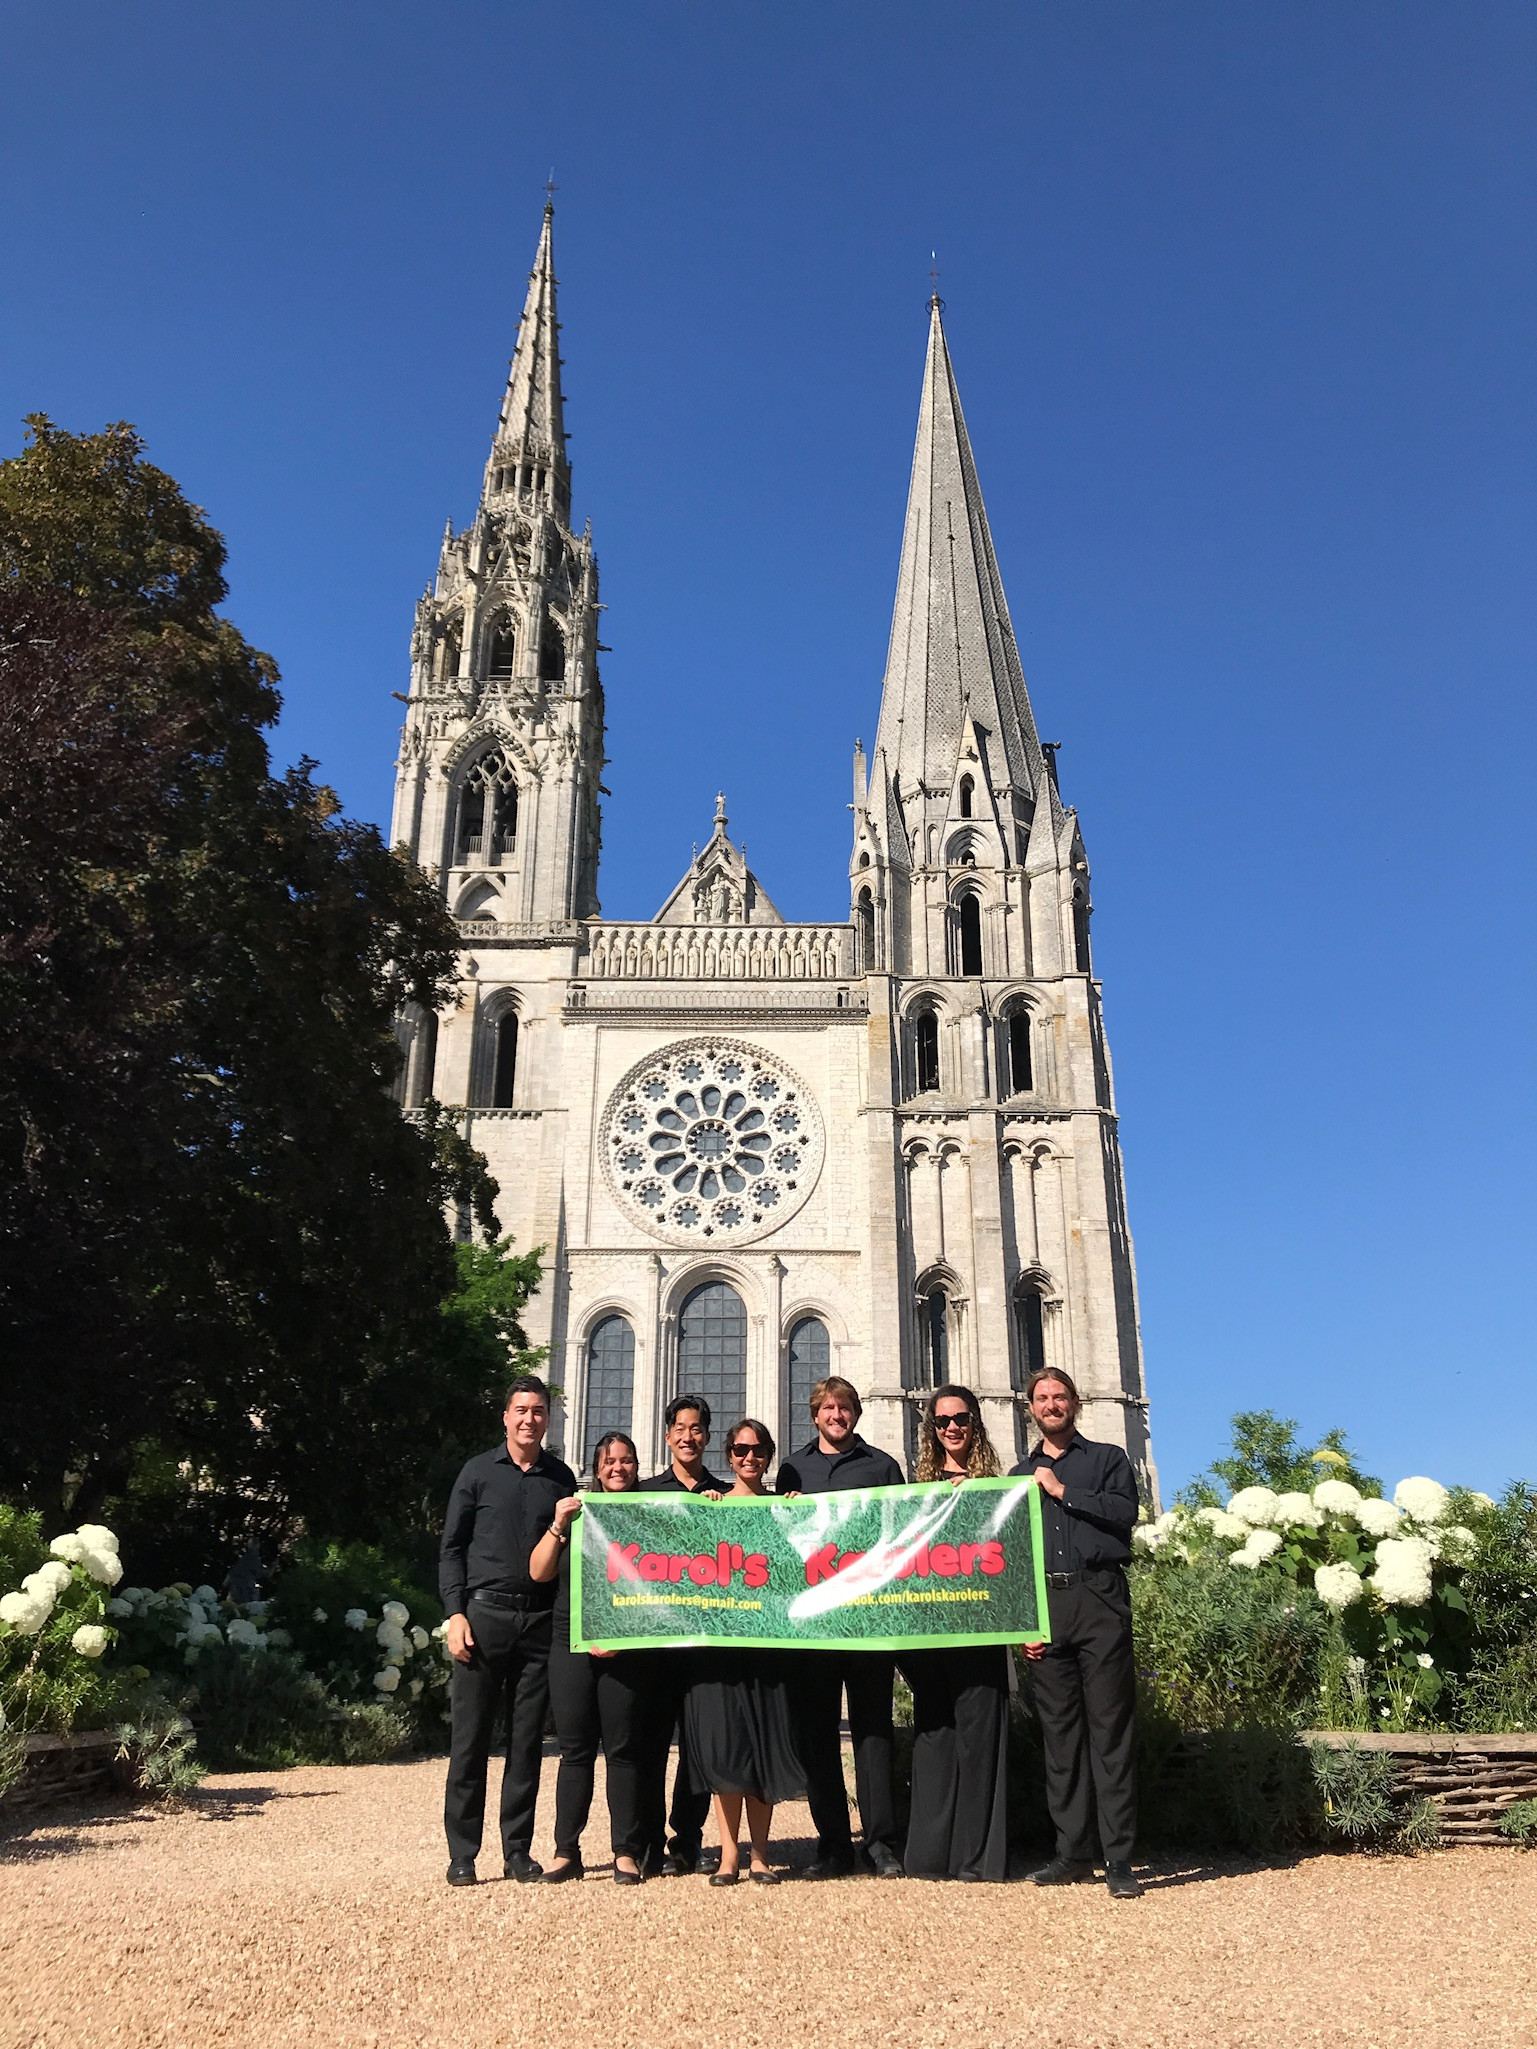 A banner picture in front of the cathedral after the concert.